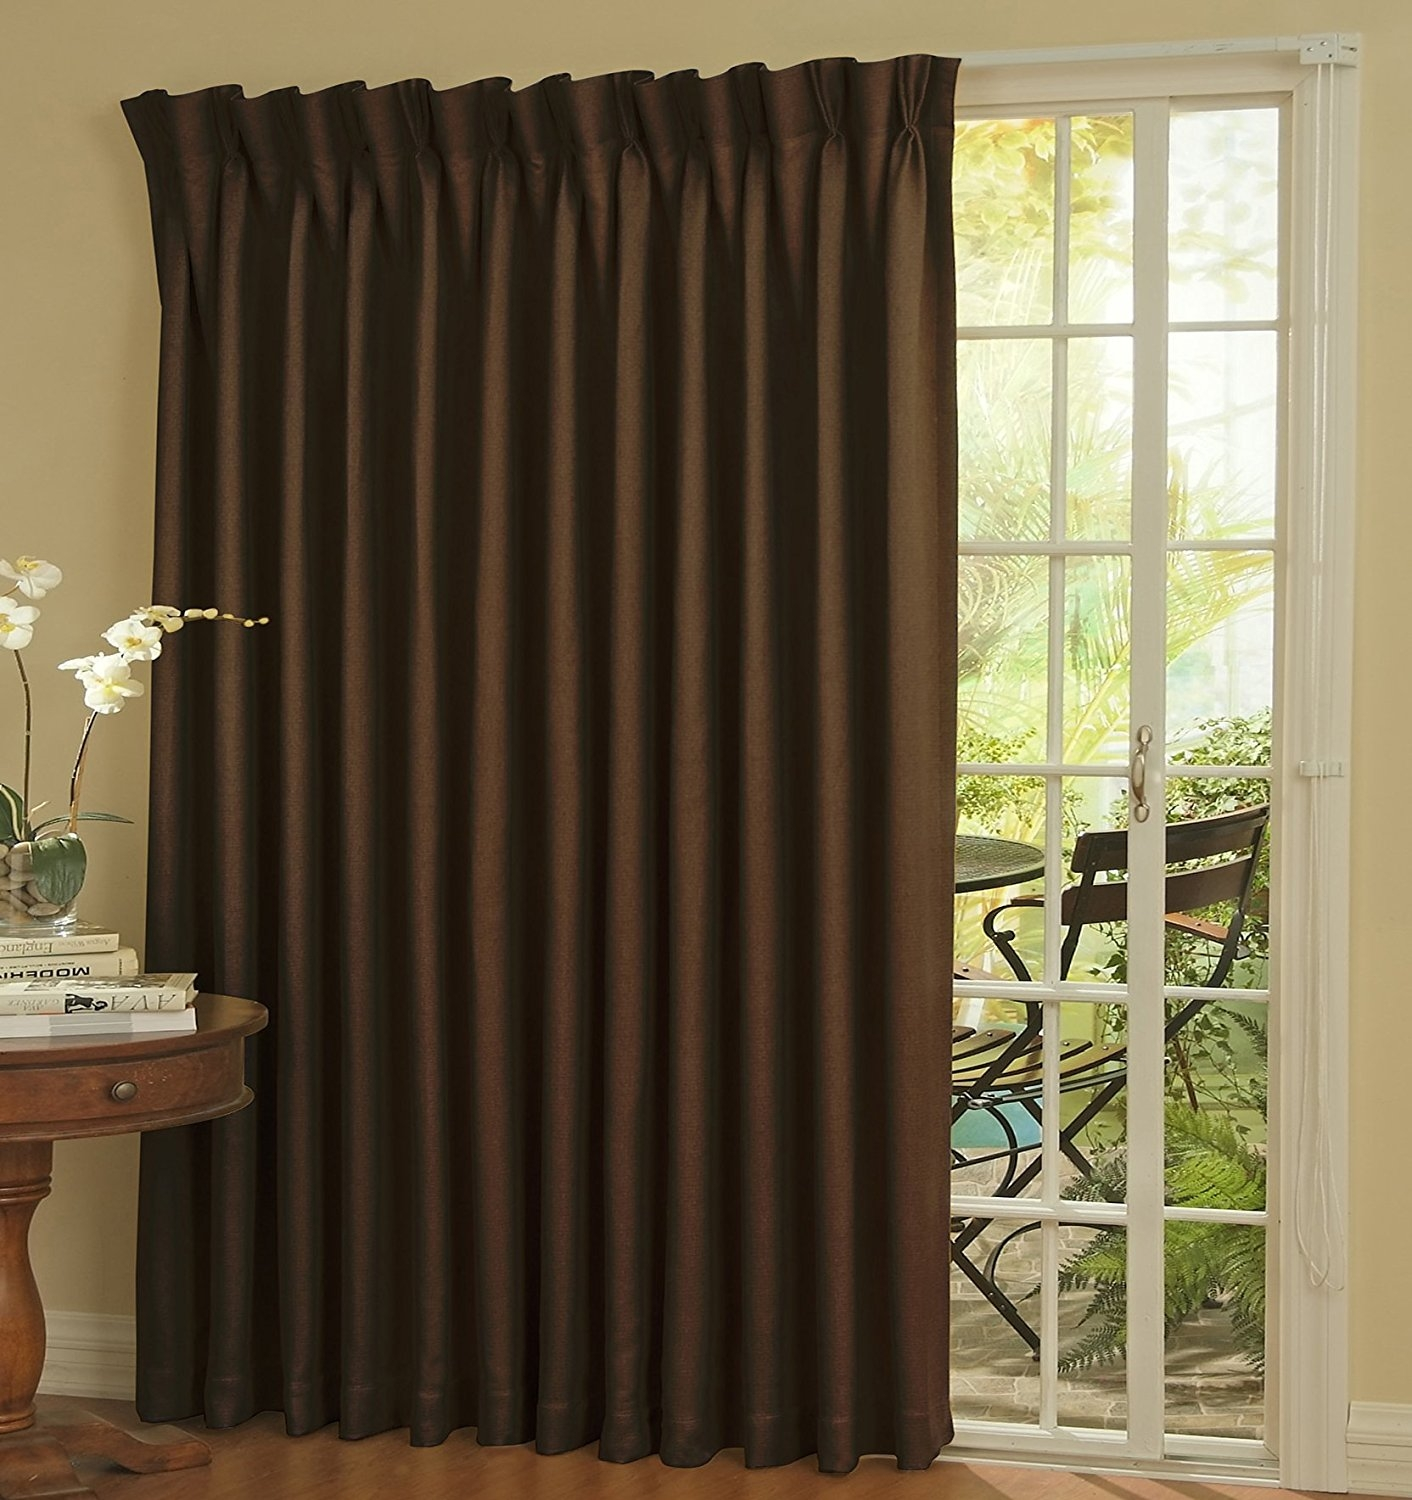 Amazon Eclipse Thermal Blackout Patio Door Curtain Panel 100 Inside Thermal Door Curtain (View 11 of 15)